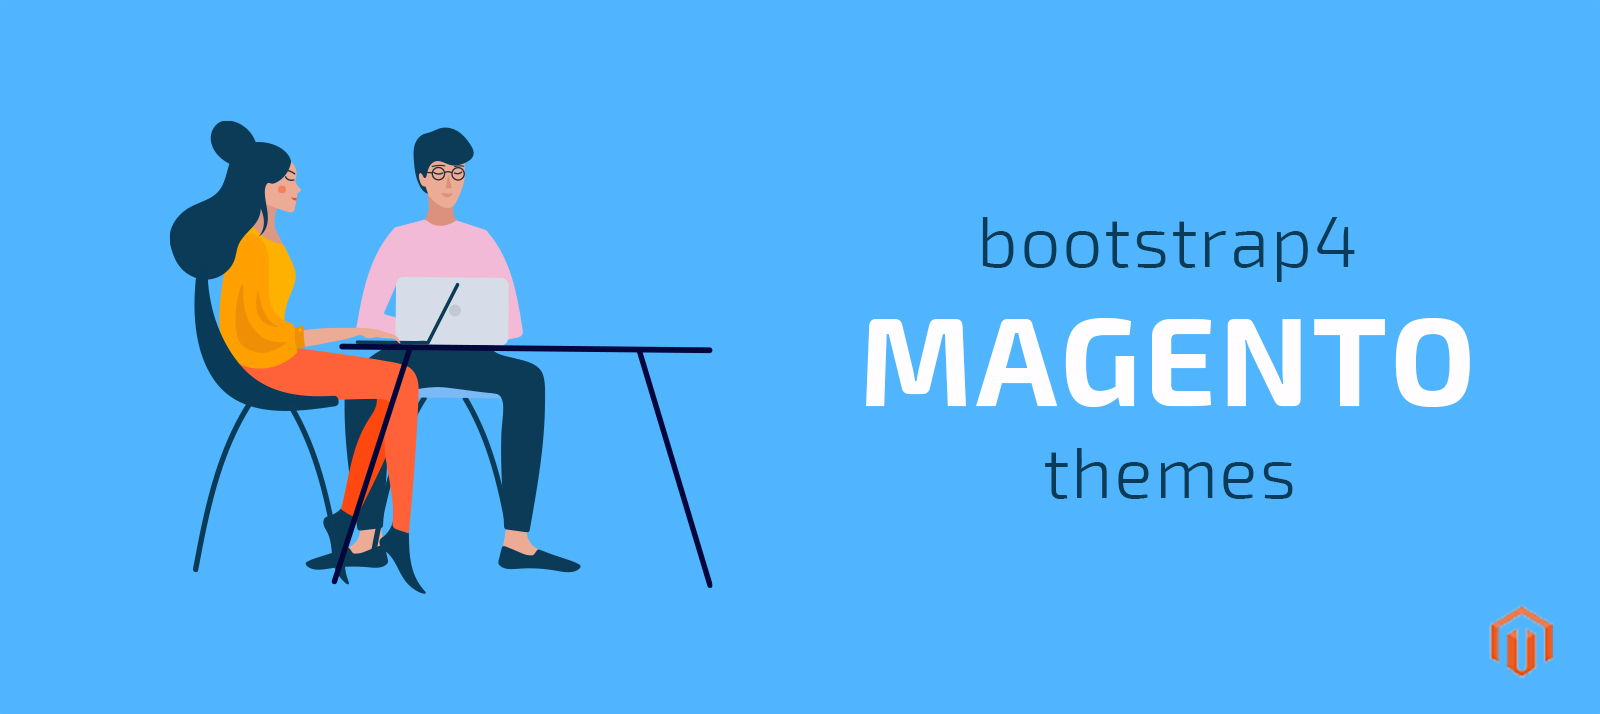 10 Bootstrap 4 Magento Themes That are Worth Checking out in 2020